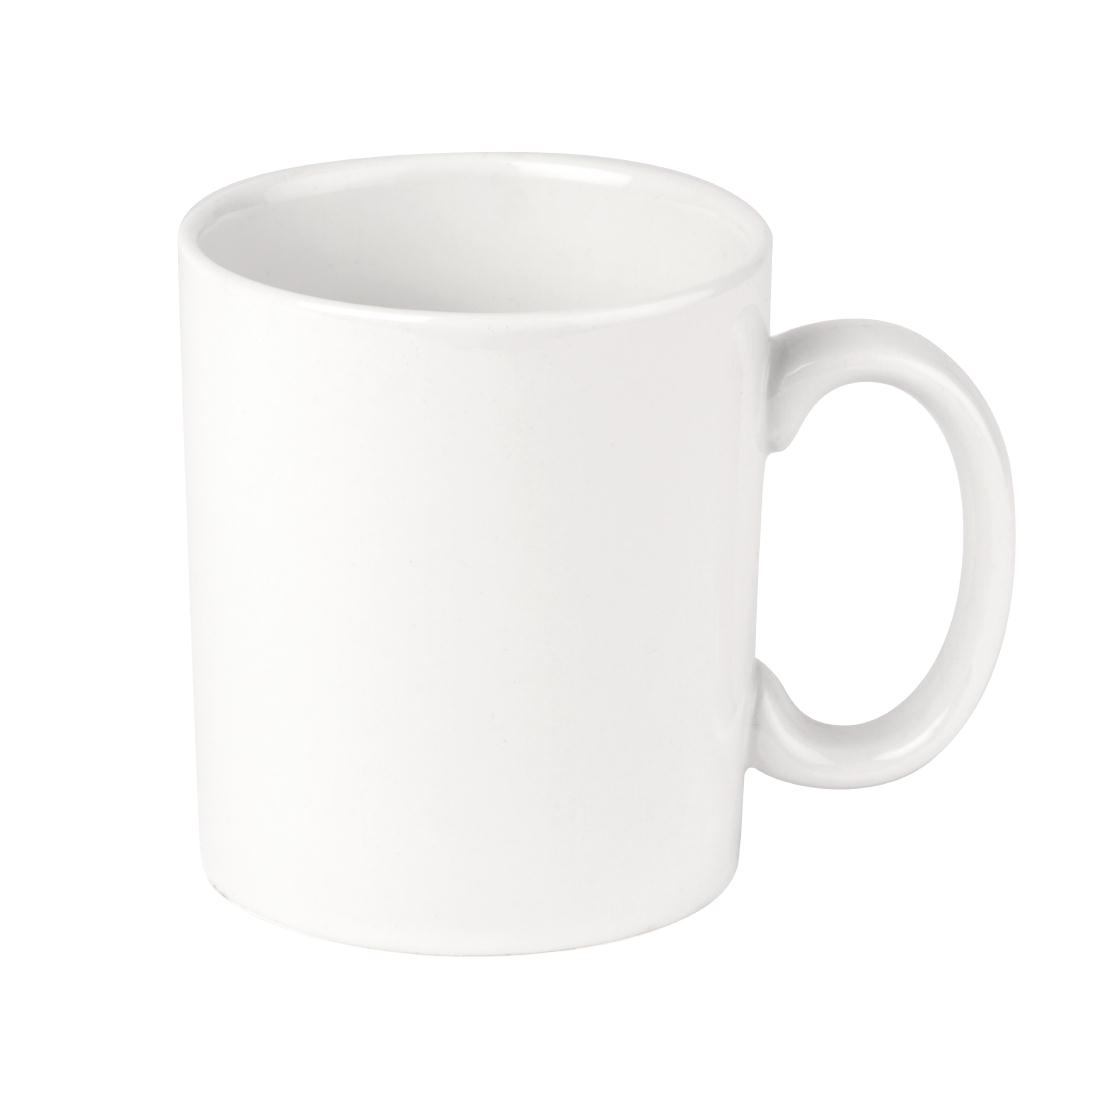 Tasses mugs Athena Hotelware 280ml par 12